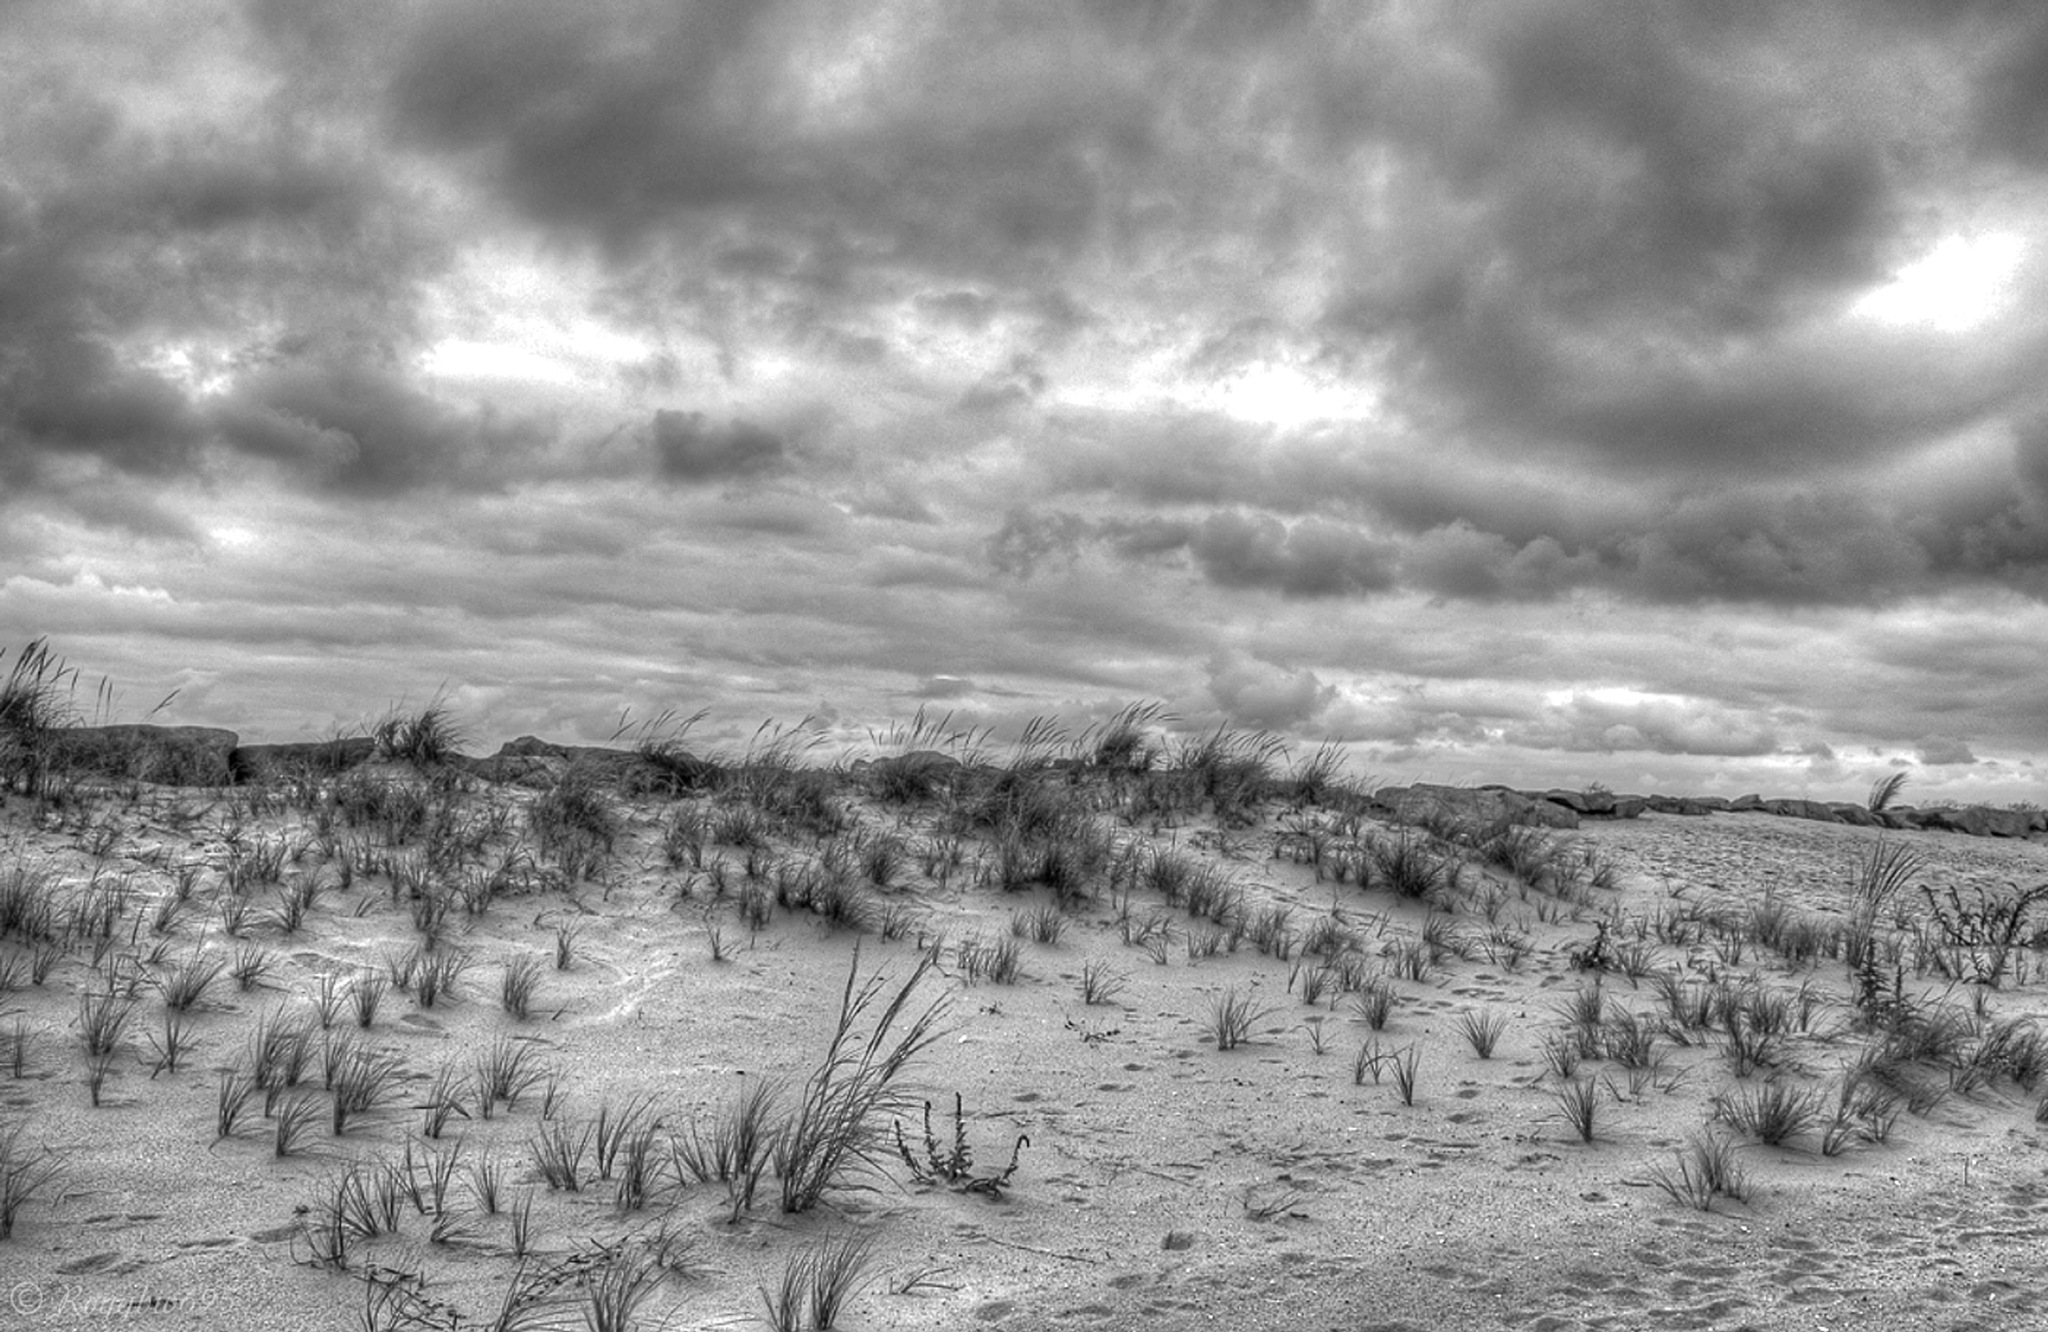 Dunes & clouds by Roygbiv695